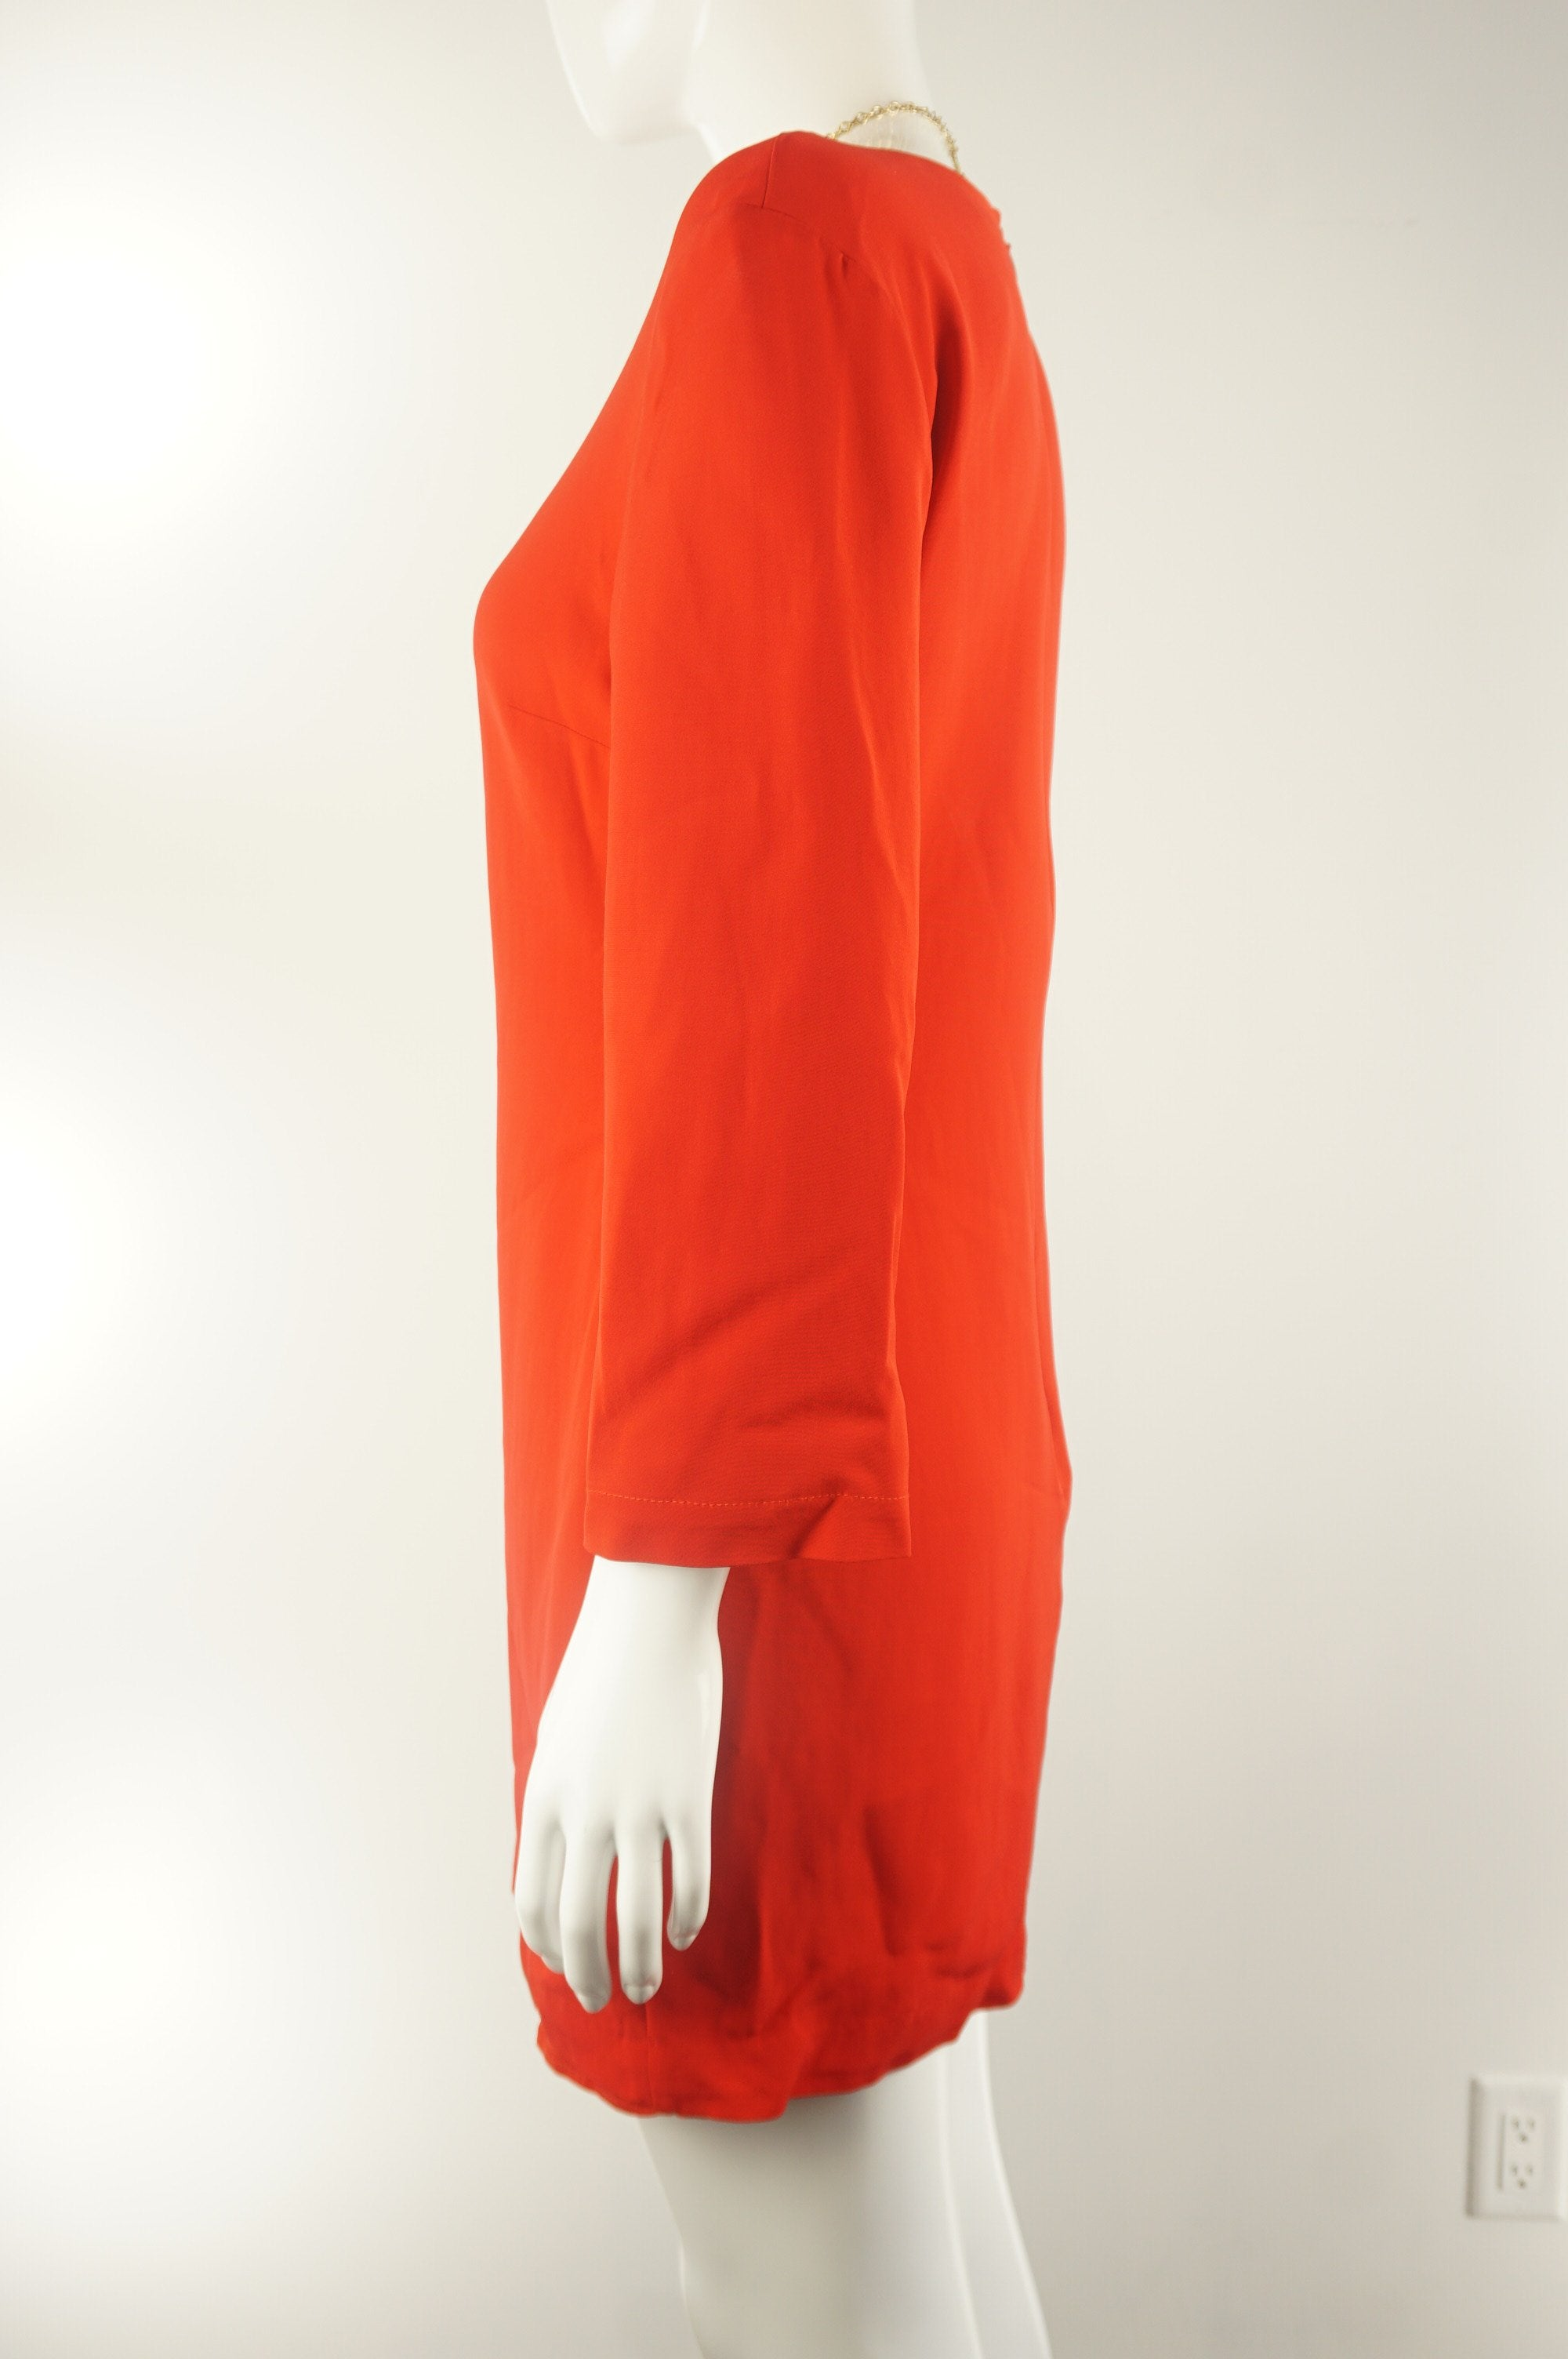 Babaton Elegant Red Dress, Simple, elegant, and vibrate dress. Perfect for brighten up the office wear., Red, 98% Viscose, 2% Spandex, women's Dresses & Rompers, women's Red Dresses & Rompers, Babaton women's Dresses & Rompers, vibrant orange office tunic dress with long sleeves, elegant red straight dress, aritzia dress, aritzia red tunic dress